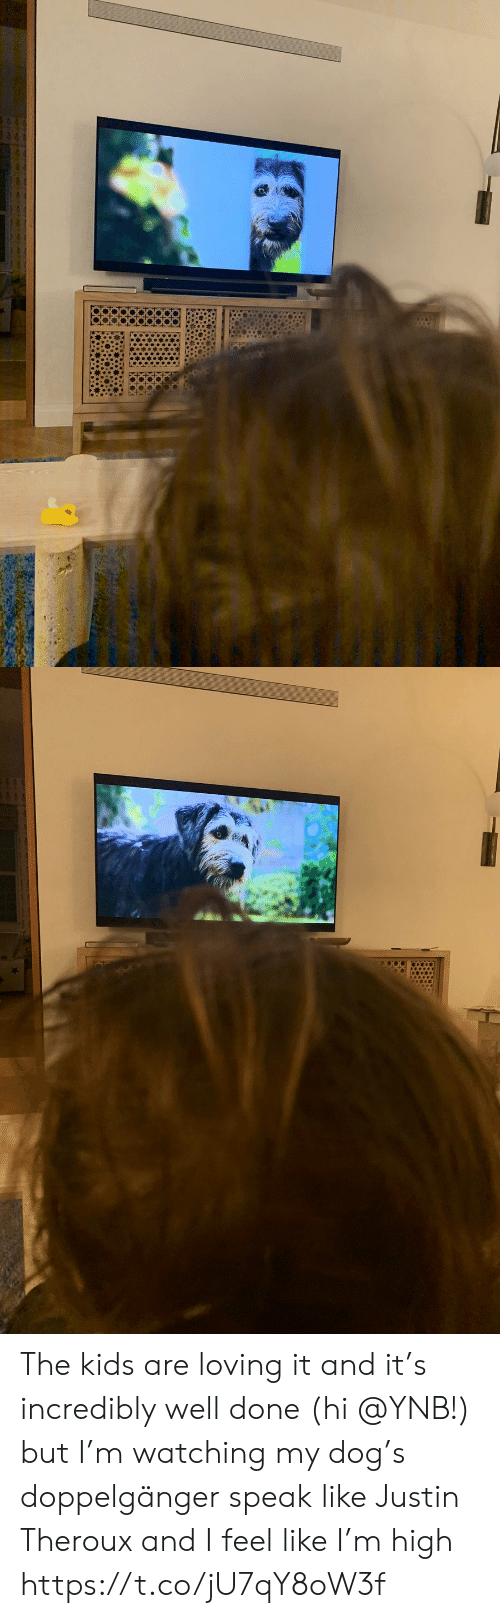 Justin: The kids are loving it and it's incredibly well done (hi @YNB!) but I'm watching my dog's doppelgänger speak like Justin Theroux and I feel like I'm high https://t.co/jU7qY8oW3f